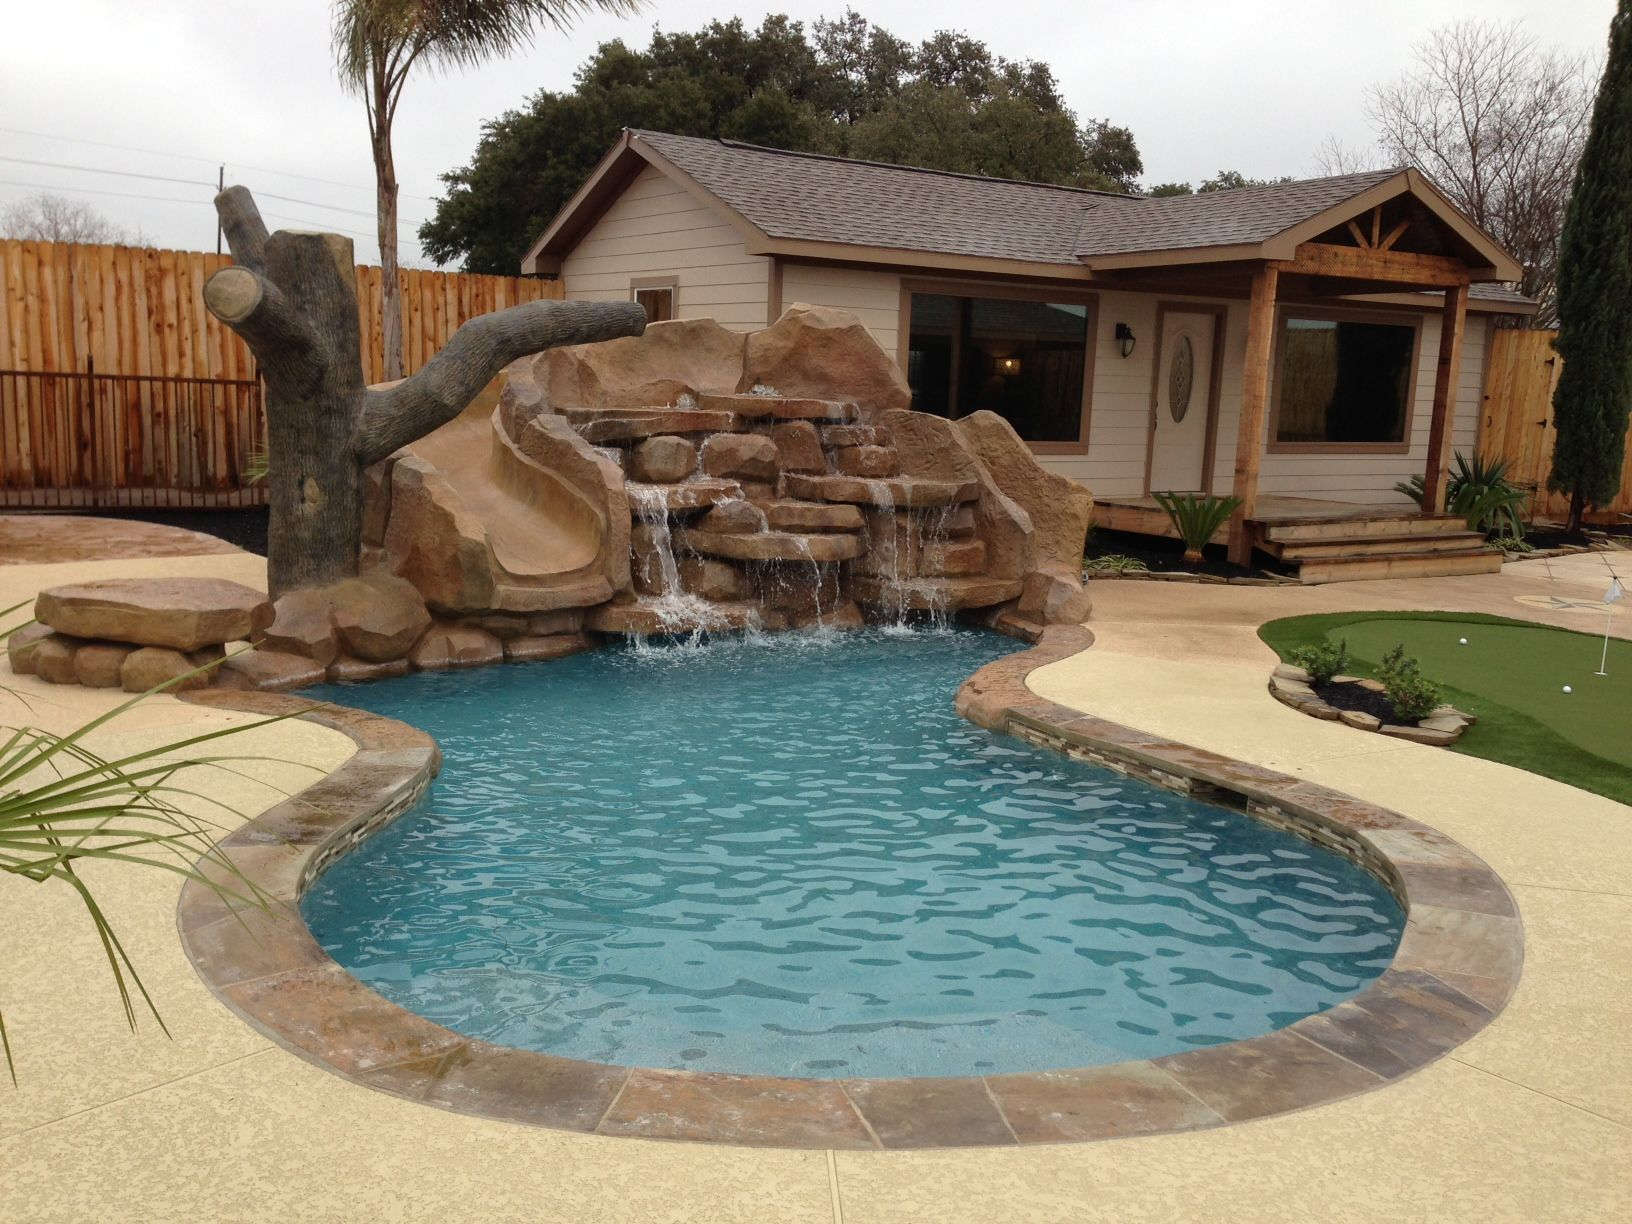 small+backyard+pools | Small Swimming Pool Designs Ideas For Small Home  Backyards For